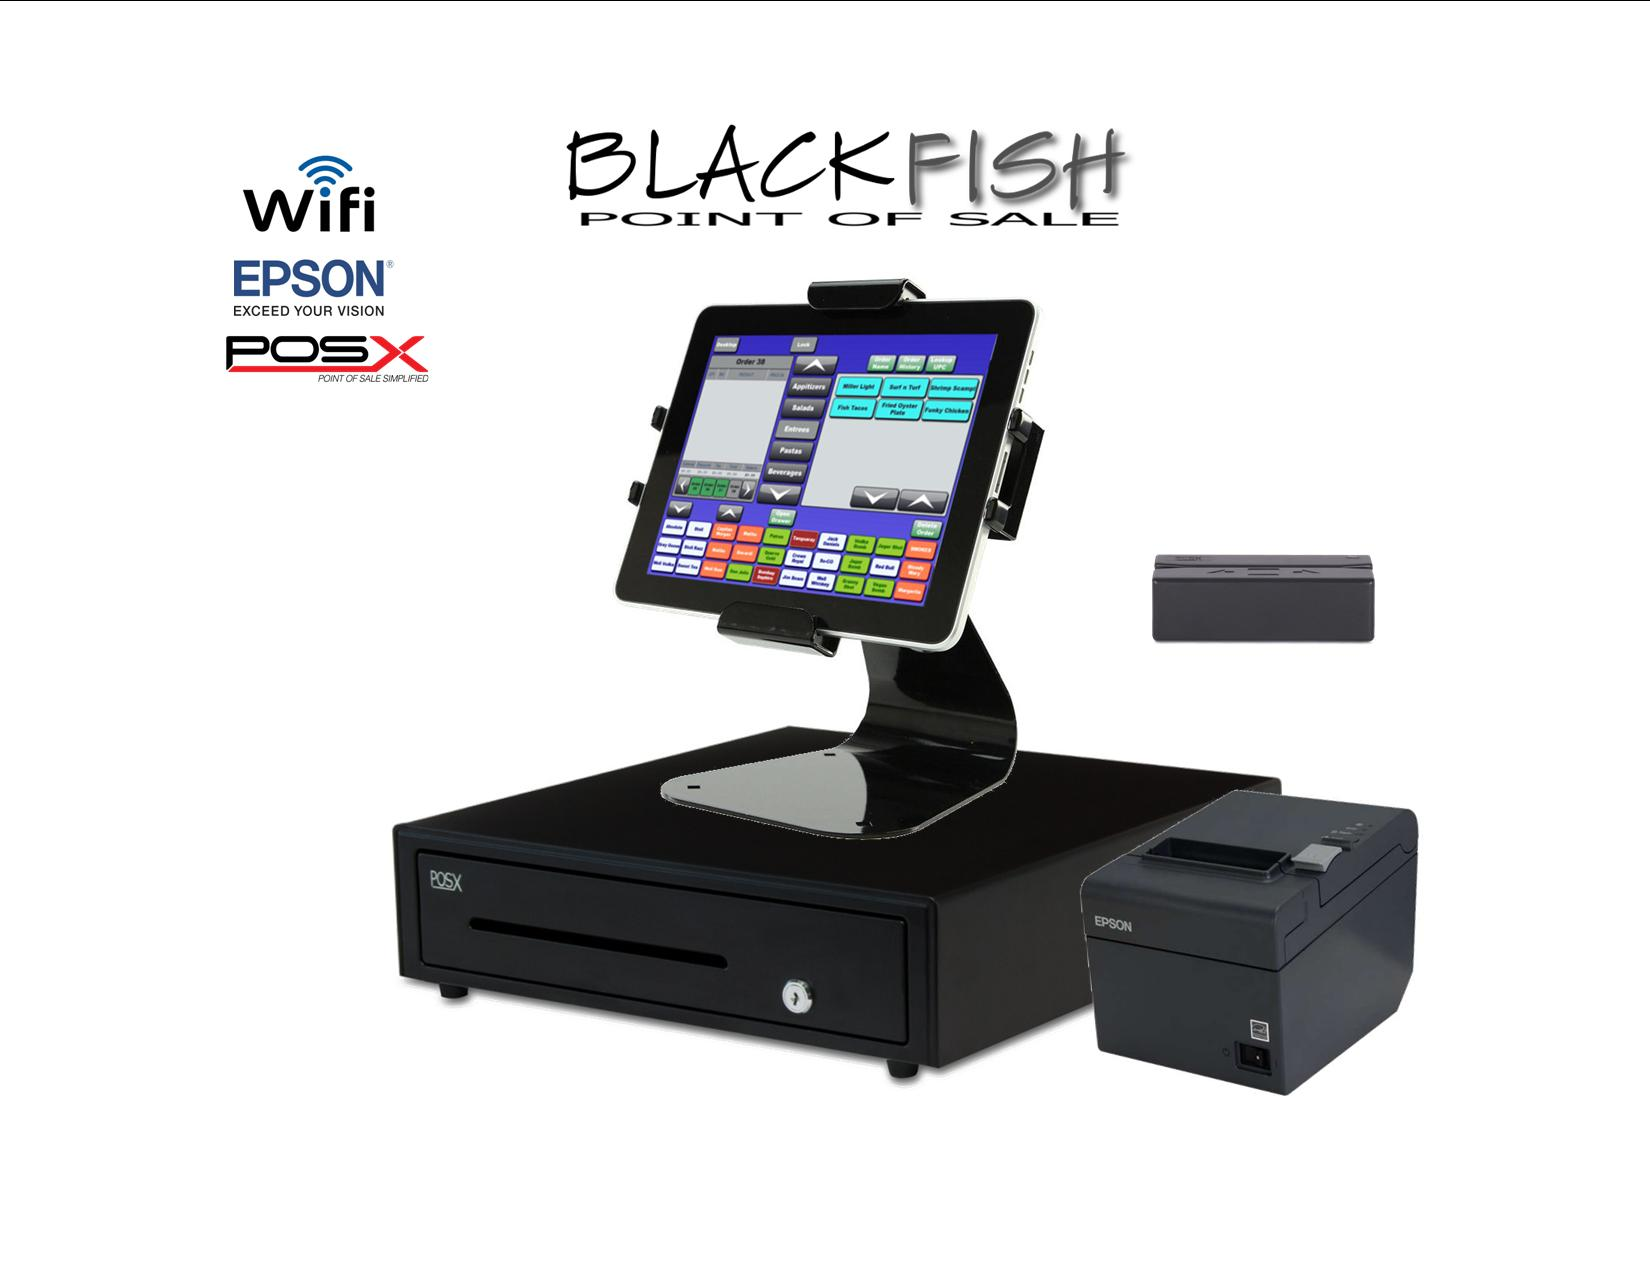 1 Station Tablet Bar Restaurant Pos System Blackfish Pos